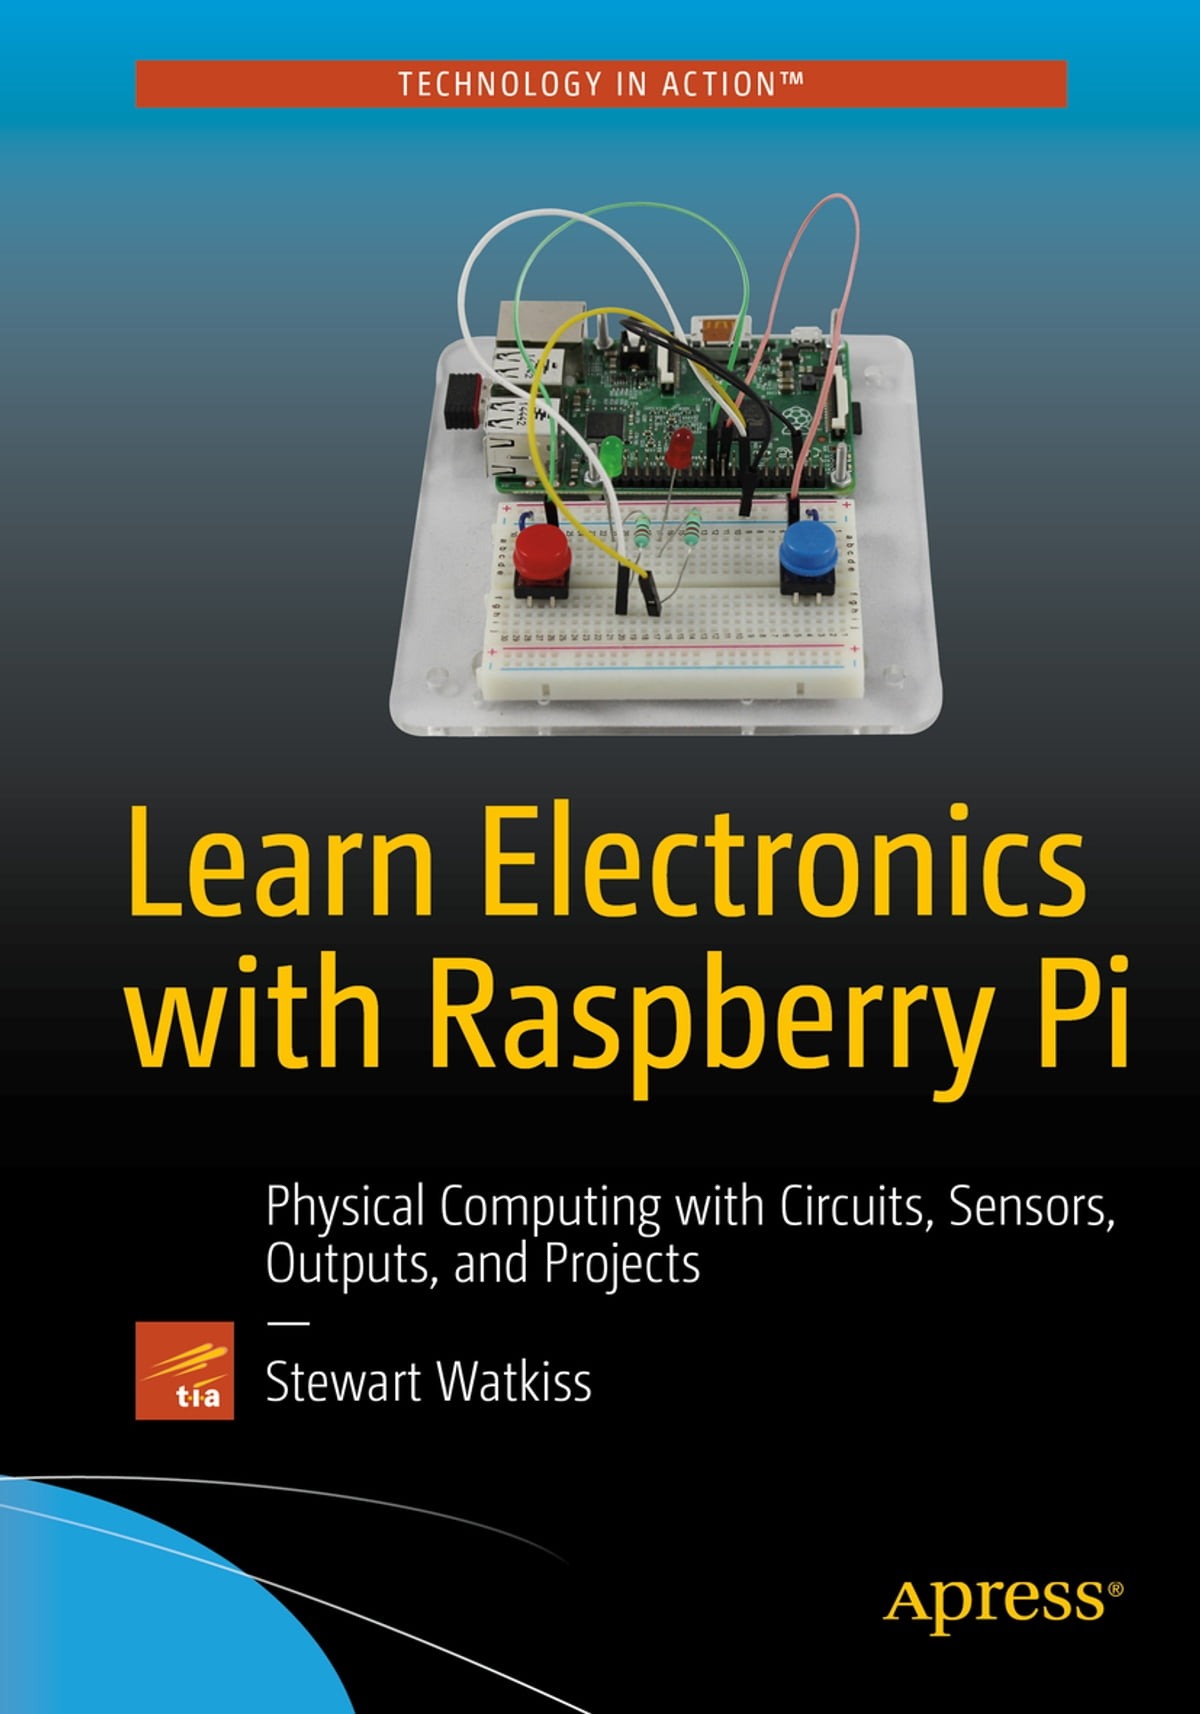 Learn Electronics With Raspberry Pi Ebook By Stewart Watkiss Circuits Electronic Circuit Parts For Project 9781484218983 Rakuten Kobo